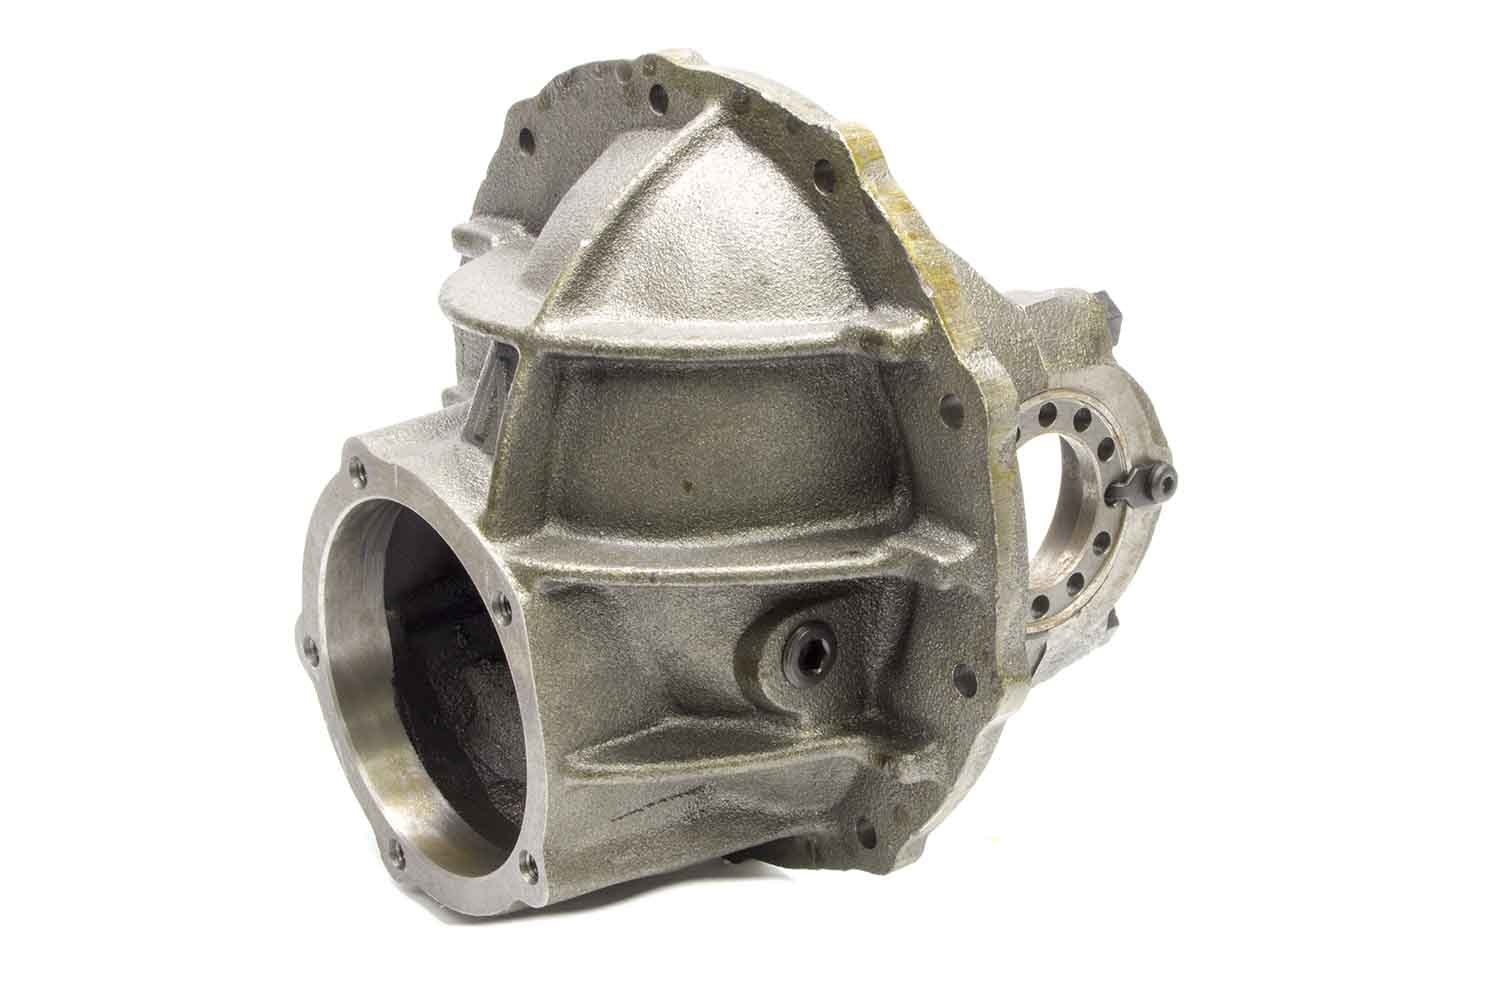 Nine Plus 94026 Differential Case, Sportsman Case, 3.062 in Bore, Adjusters/Caps, Ductile Iron, Natural, Ford 9 in, Each